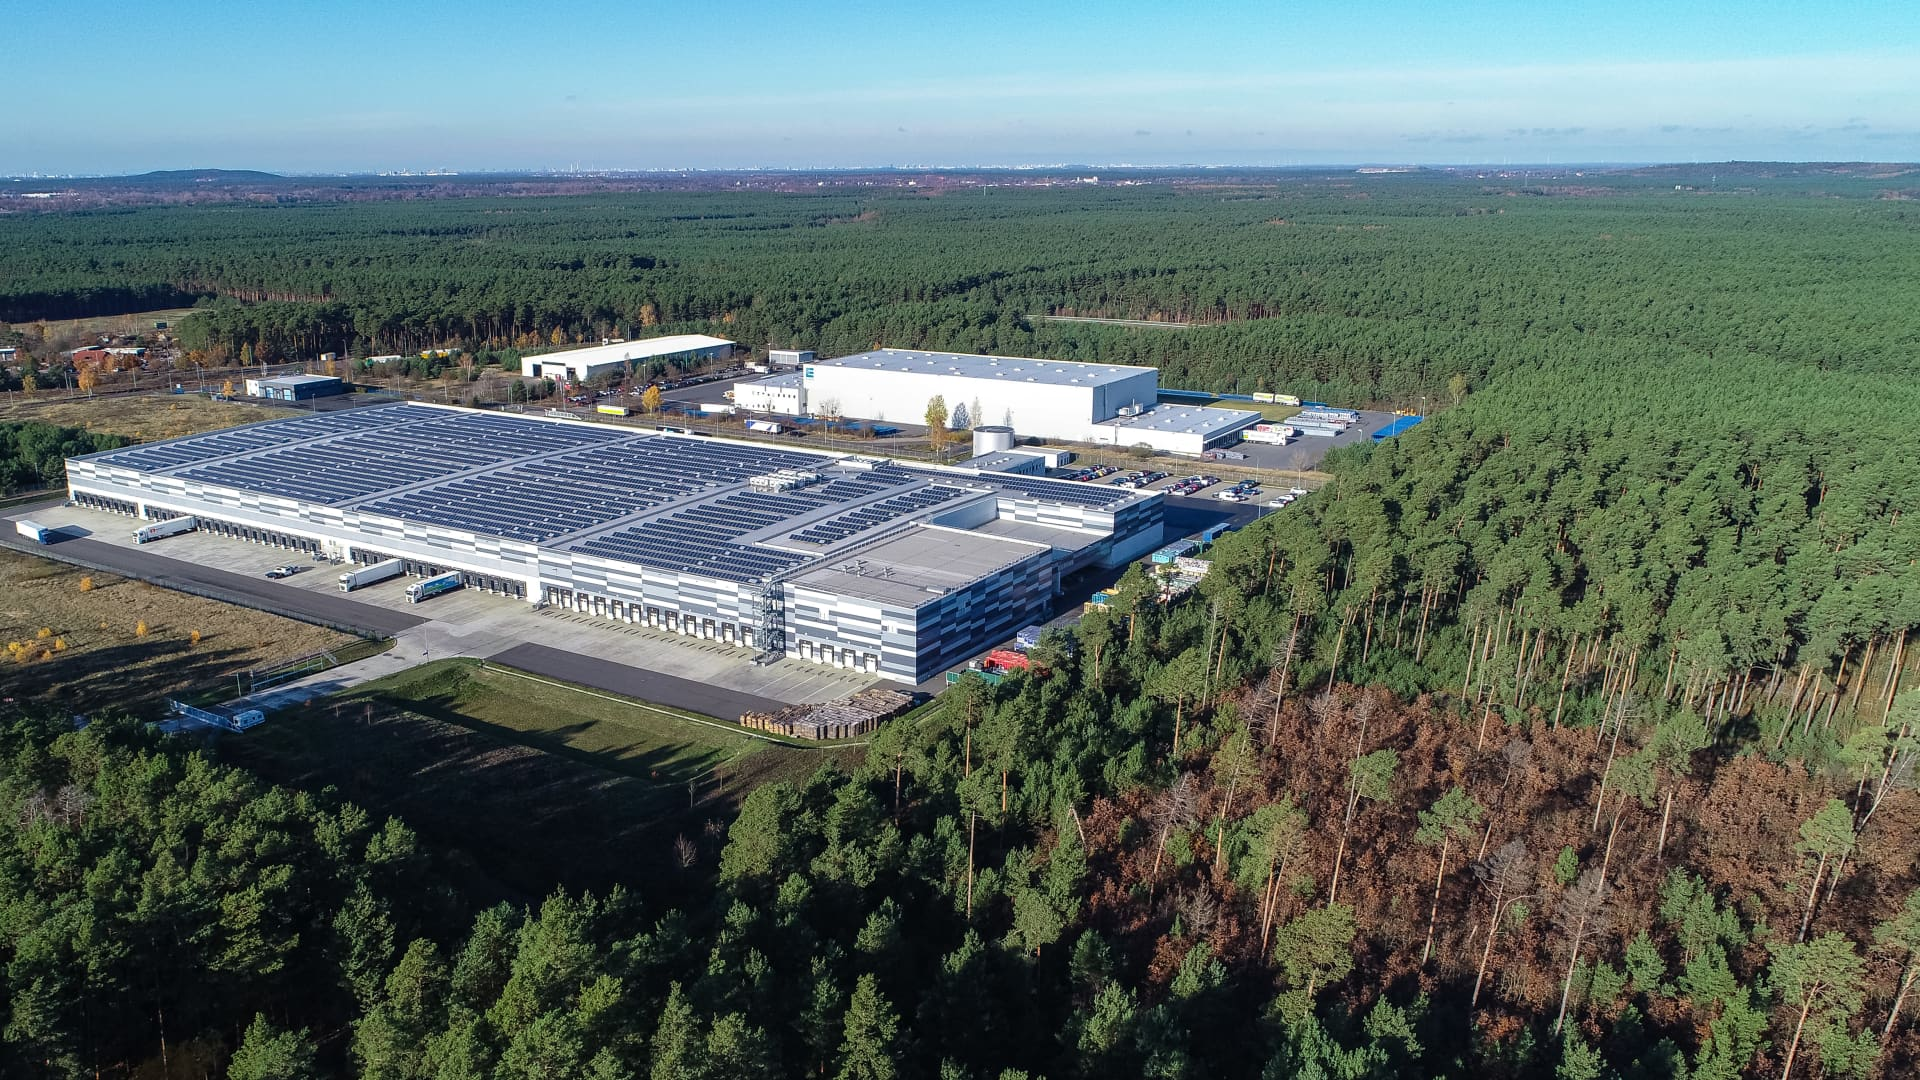 The freight traffic center in the Gruenheide region east of Berlin. Tesla plans to build its new European Gigafactory in a huge forest nearby.